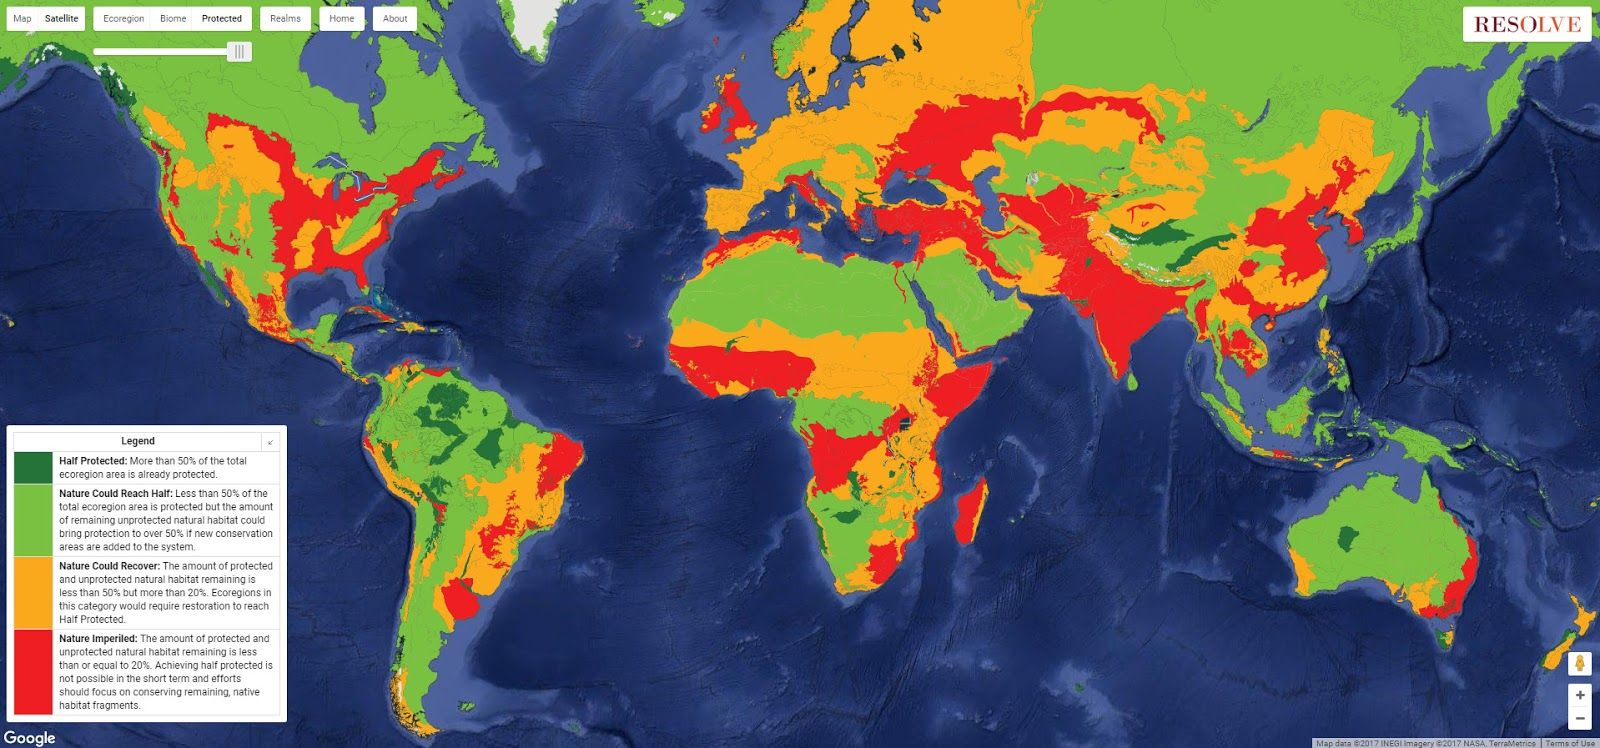 Map In Earth%0A Have you ever imagined what a map of the Earth would look like using  natural rather than political boundaries